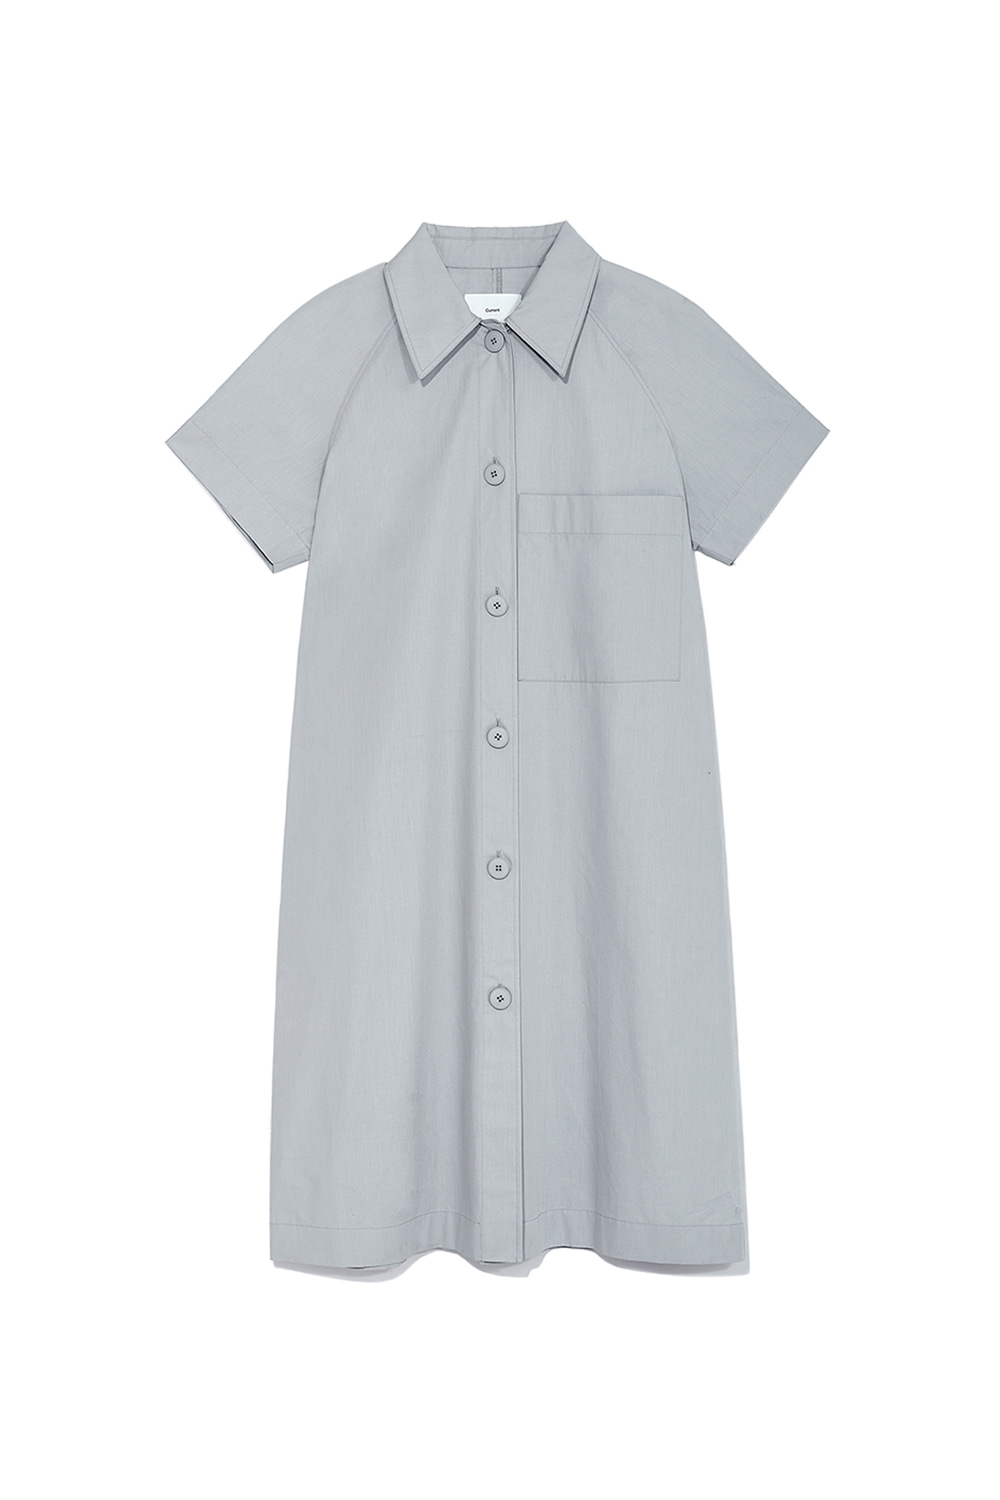 Over Shirts Dress Women [Gray] -40%